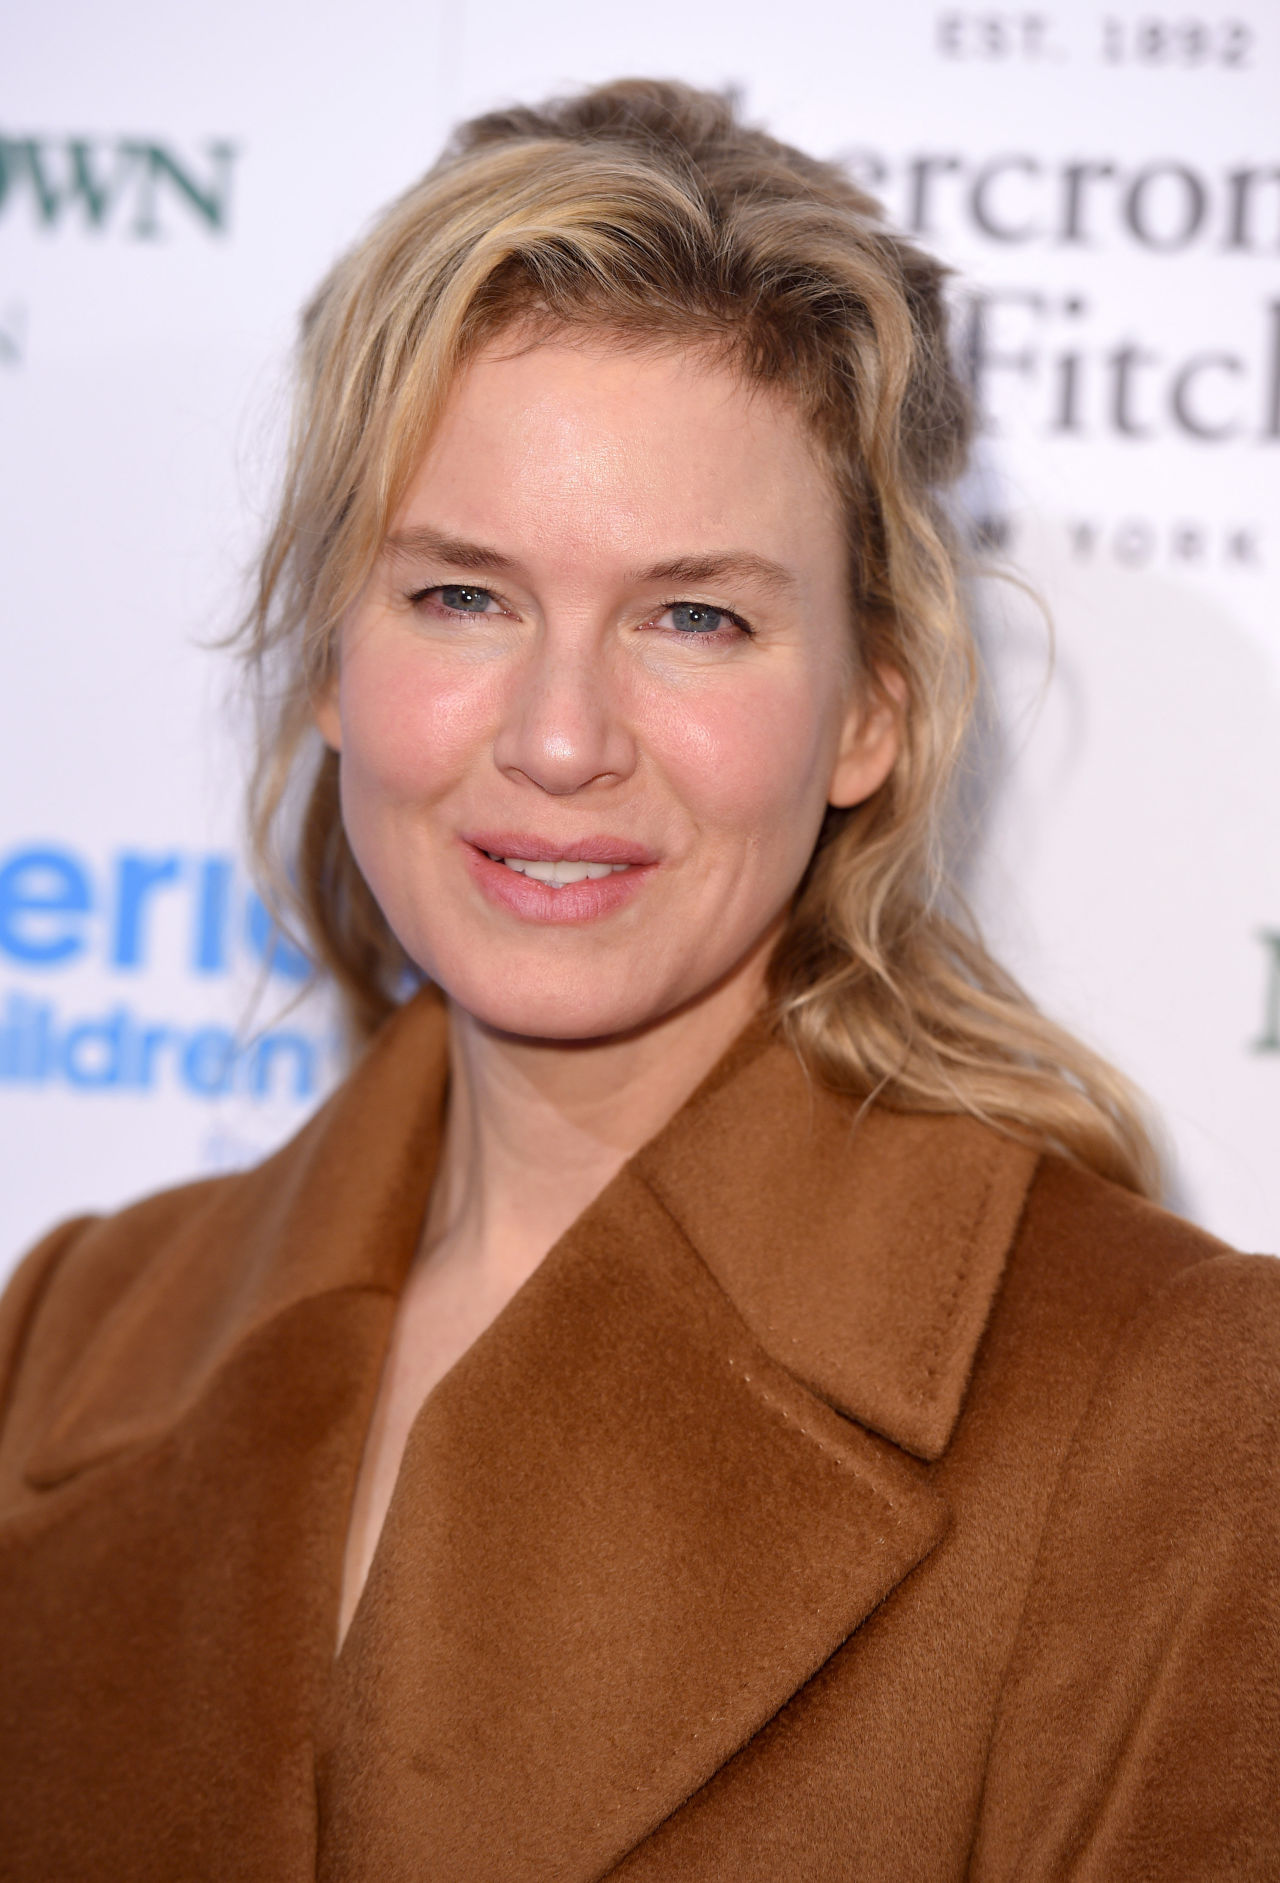 Happy Birthday To Renee Zellweger! - TOTPI Renee Zellweger